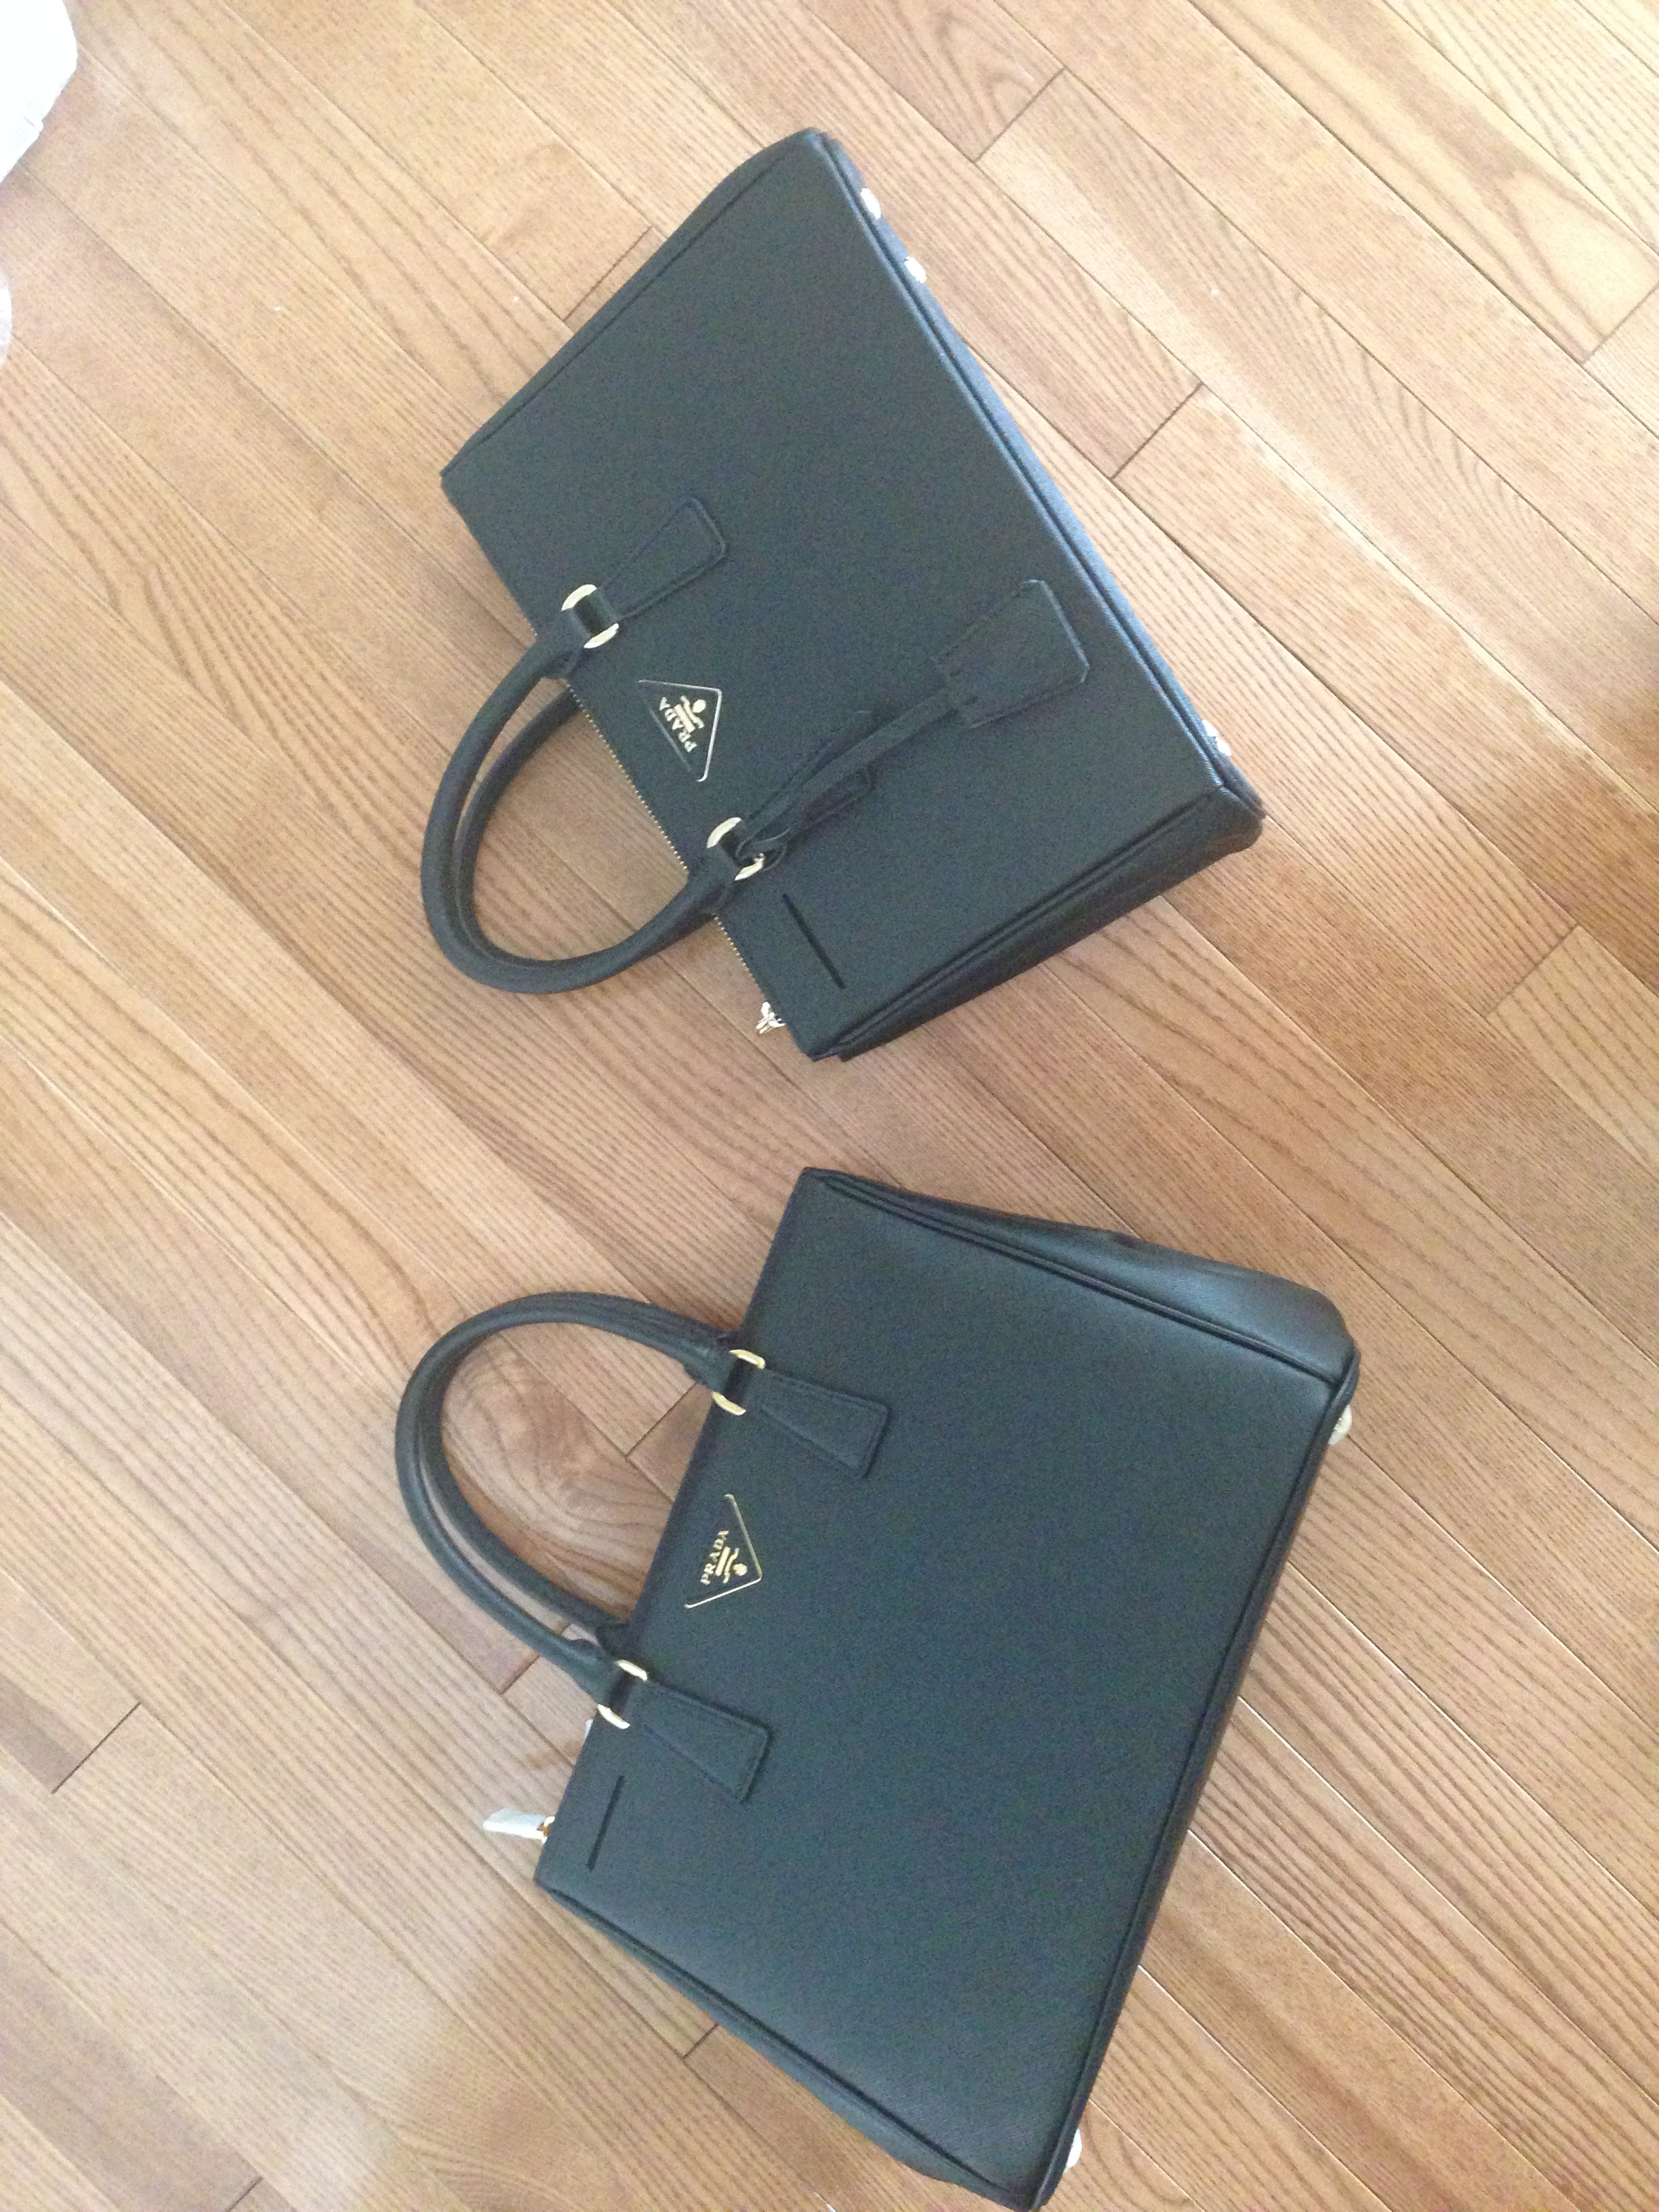 is my prada bag fake or original